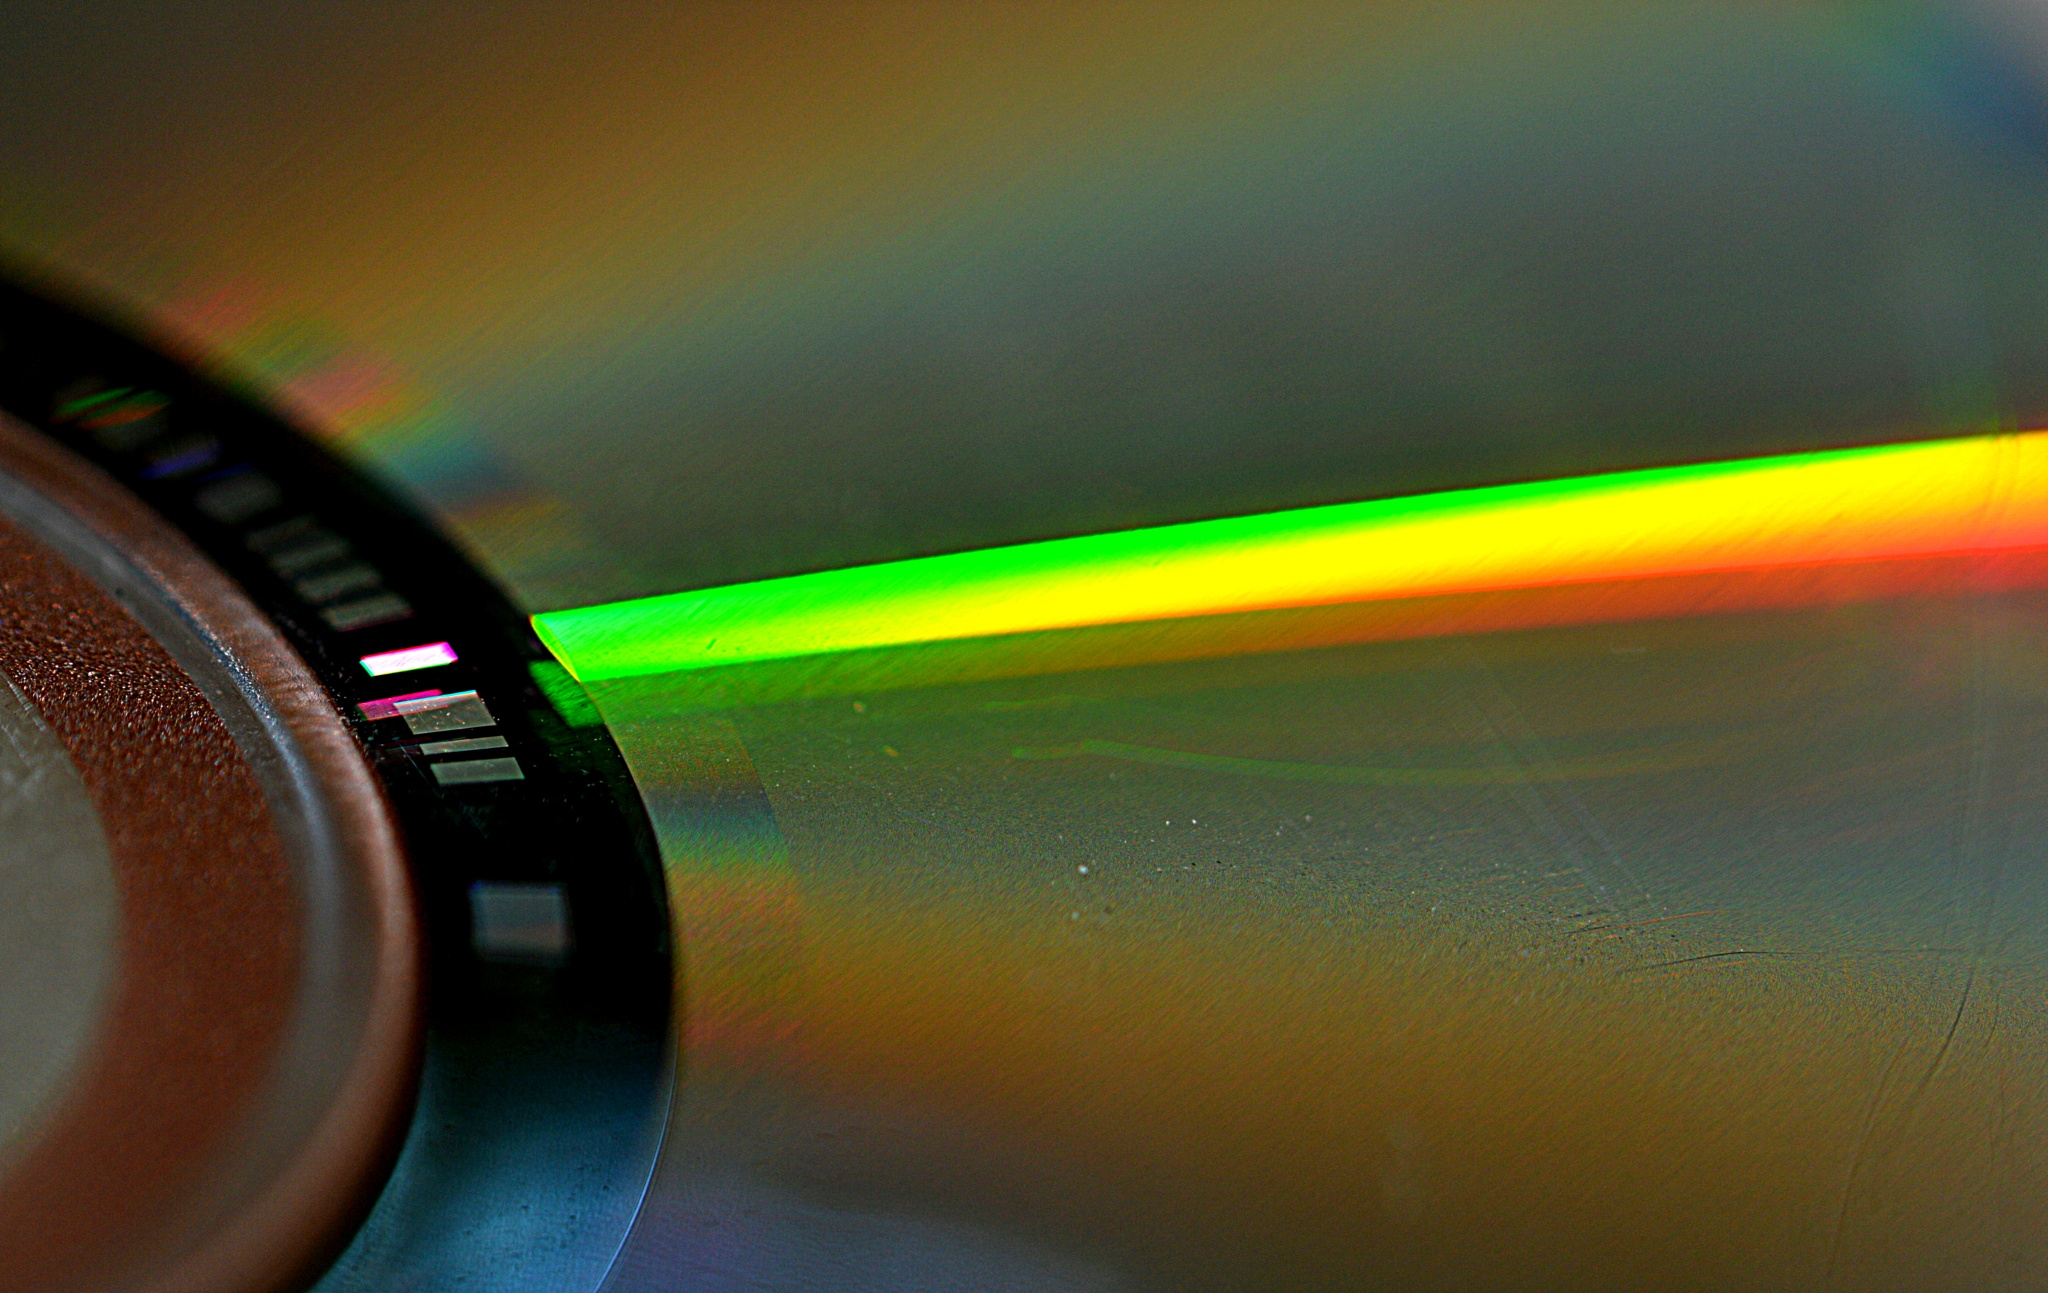 Cd light by balgot15